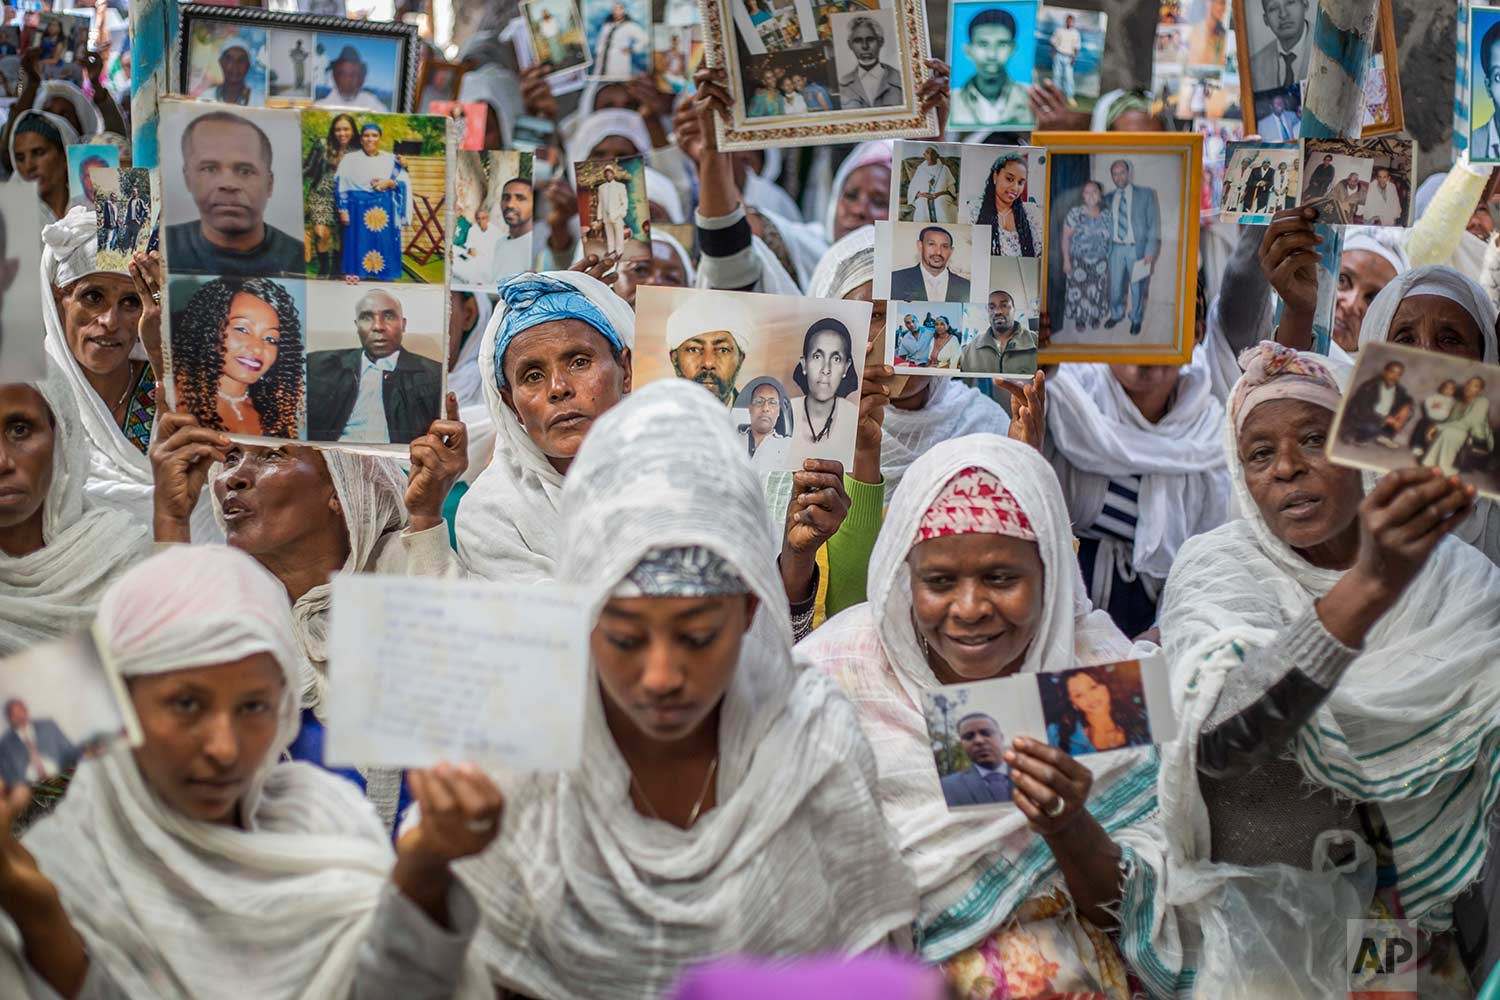 Members of Ethiopia's Jewish community hold pictures of their relatives in Israel, during a solidarity event at the synagogue in Addis Ababa, Ethiopia Wednesday, Feb. 28, 2018. (AP Photo/Mulugeta Ayene)